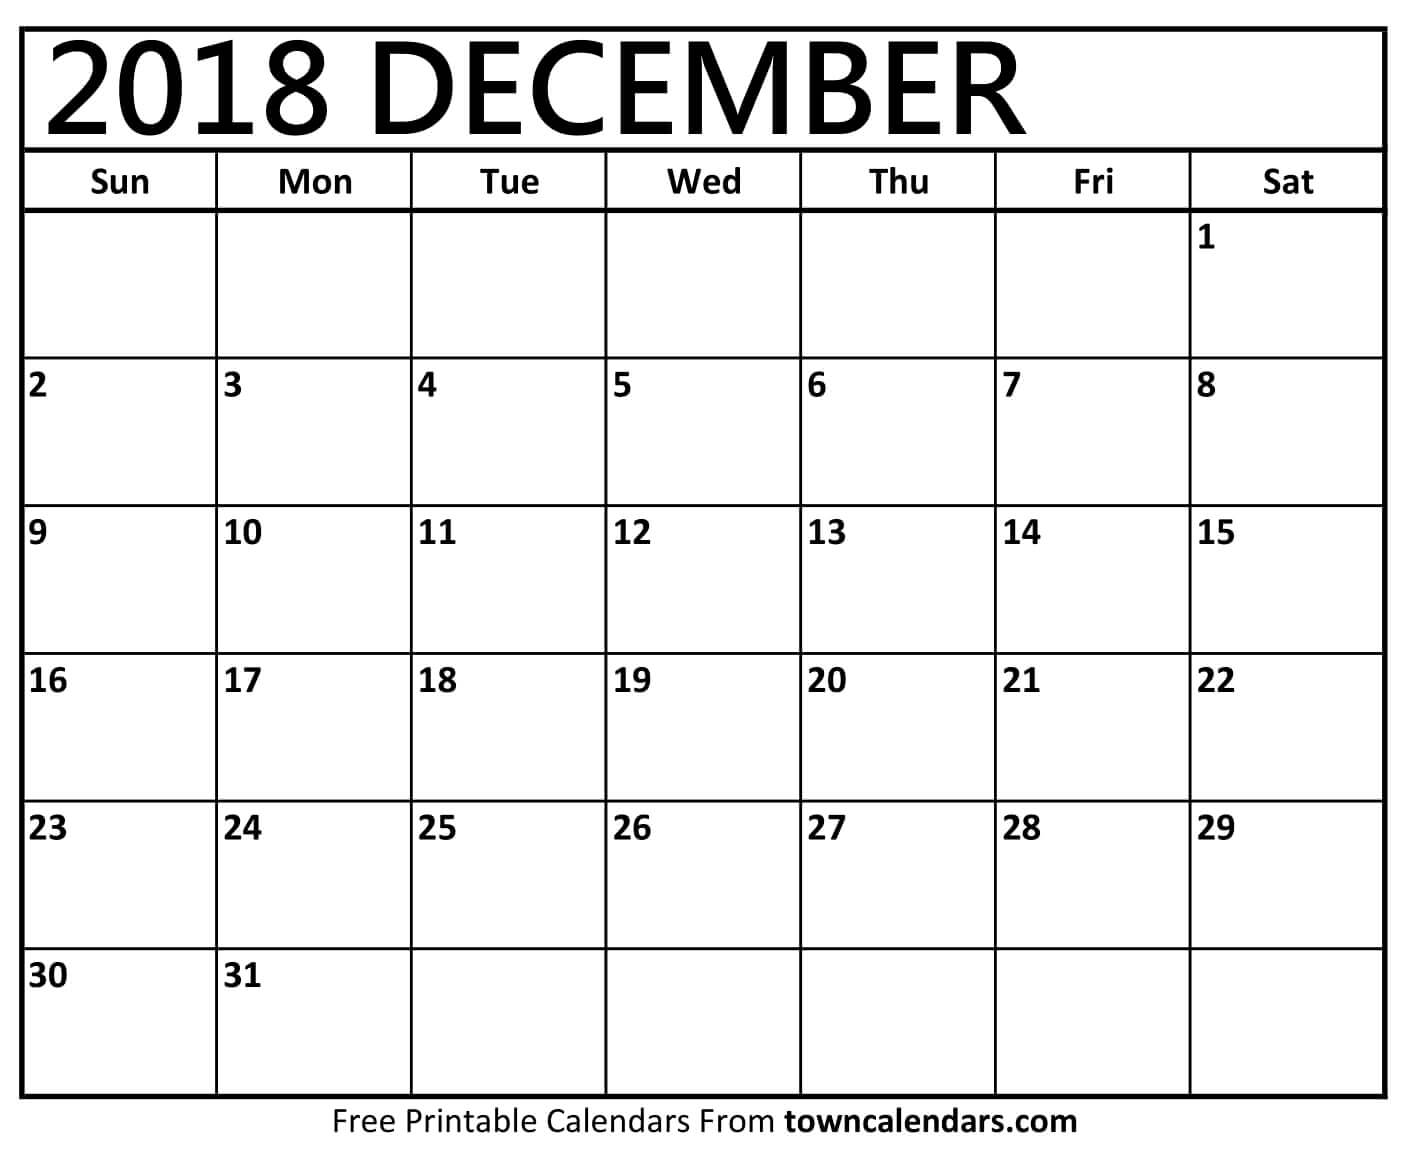 December 2018 Calendar Template Printable Images